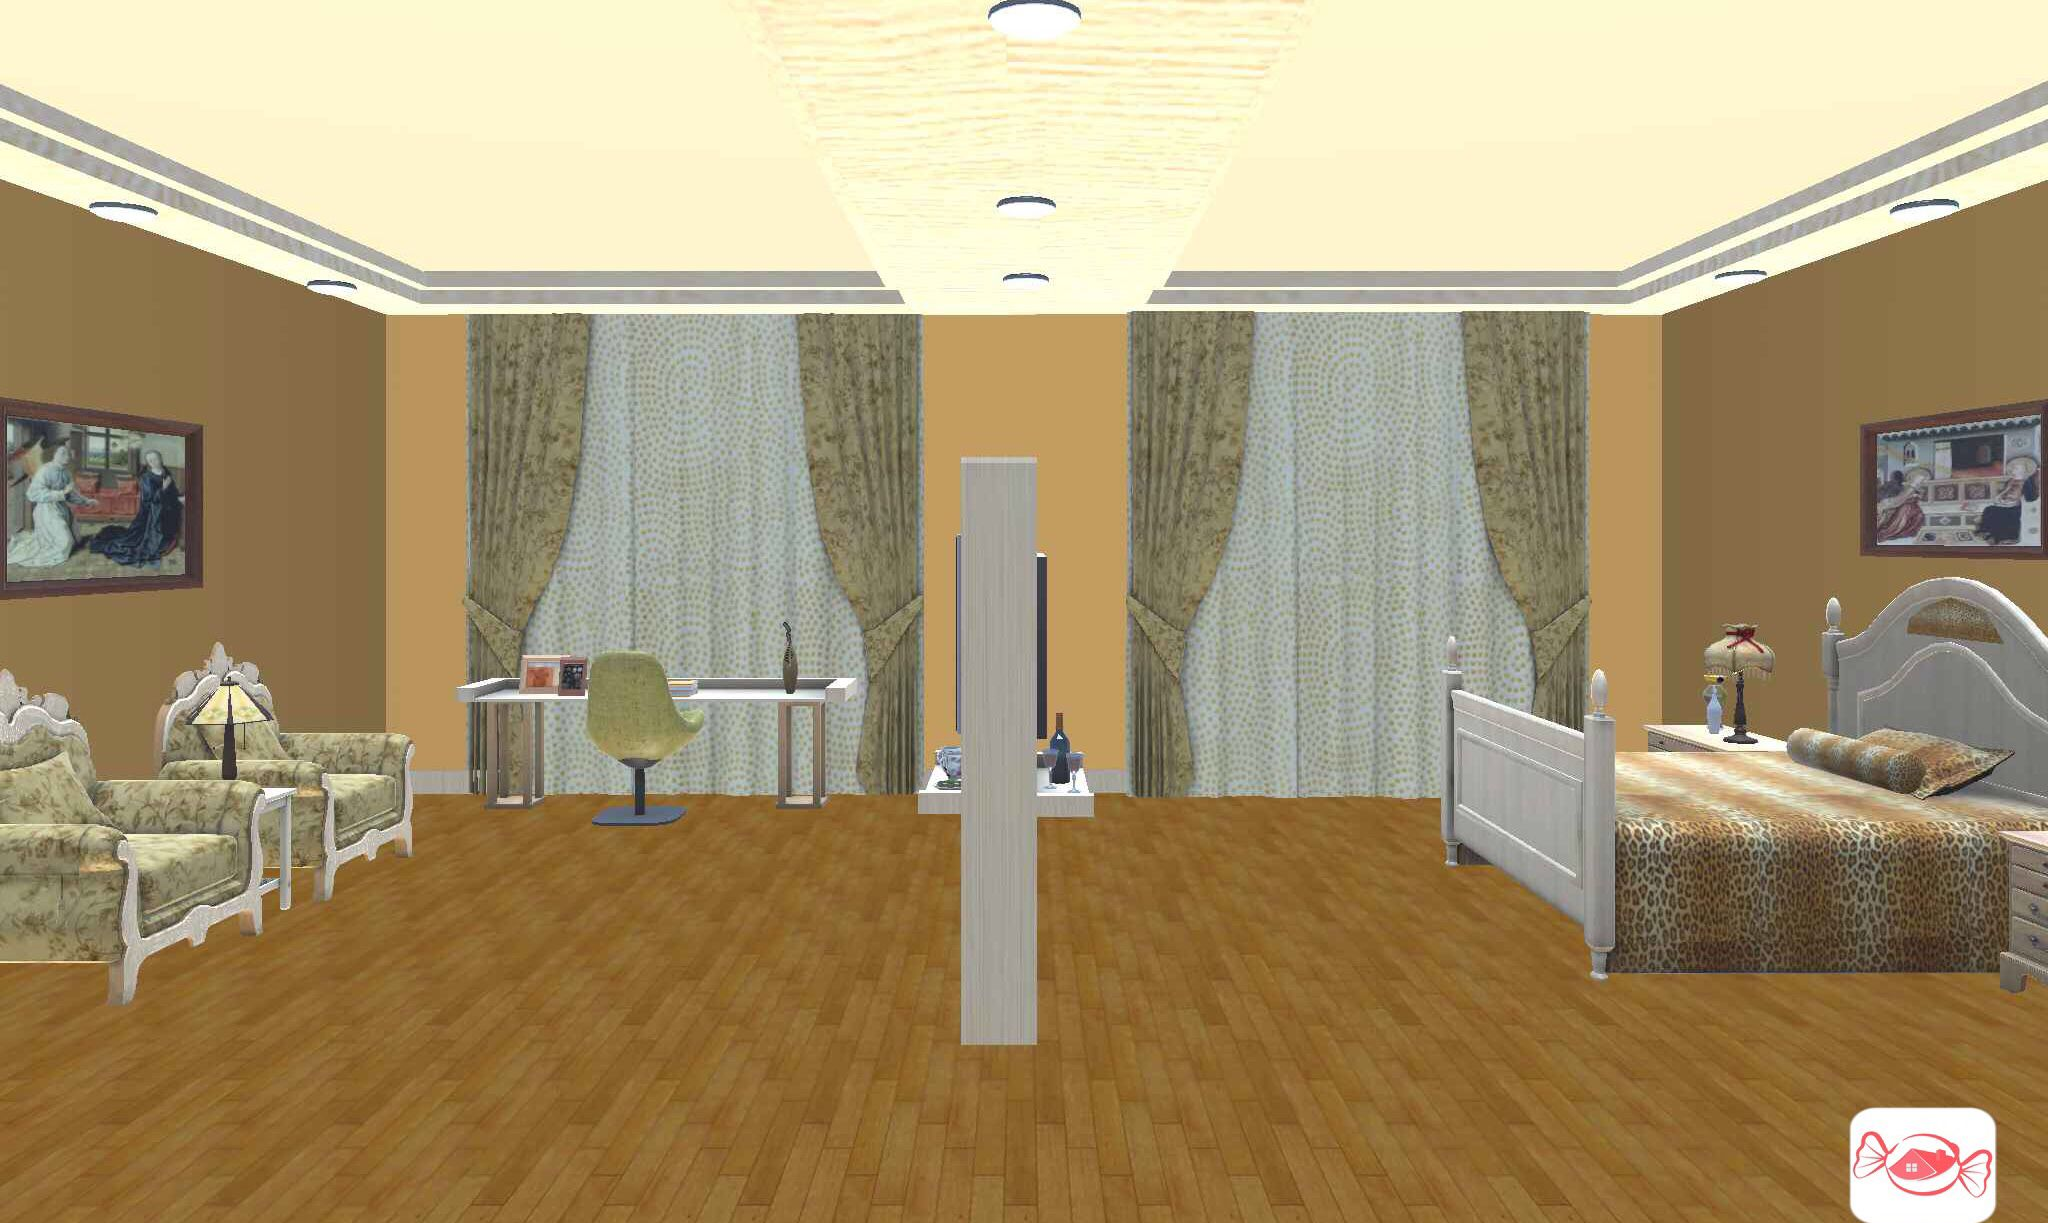 Modern Victorian bedroom created with Home Sweet Home 3D